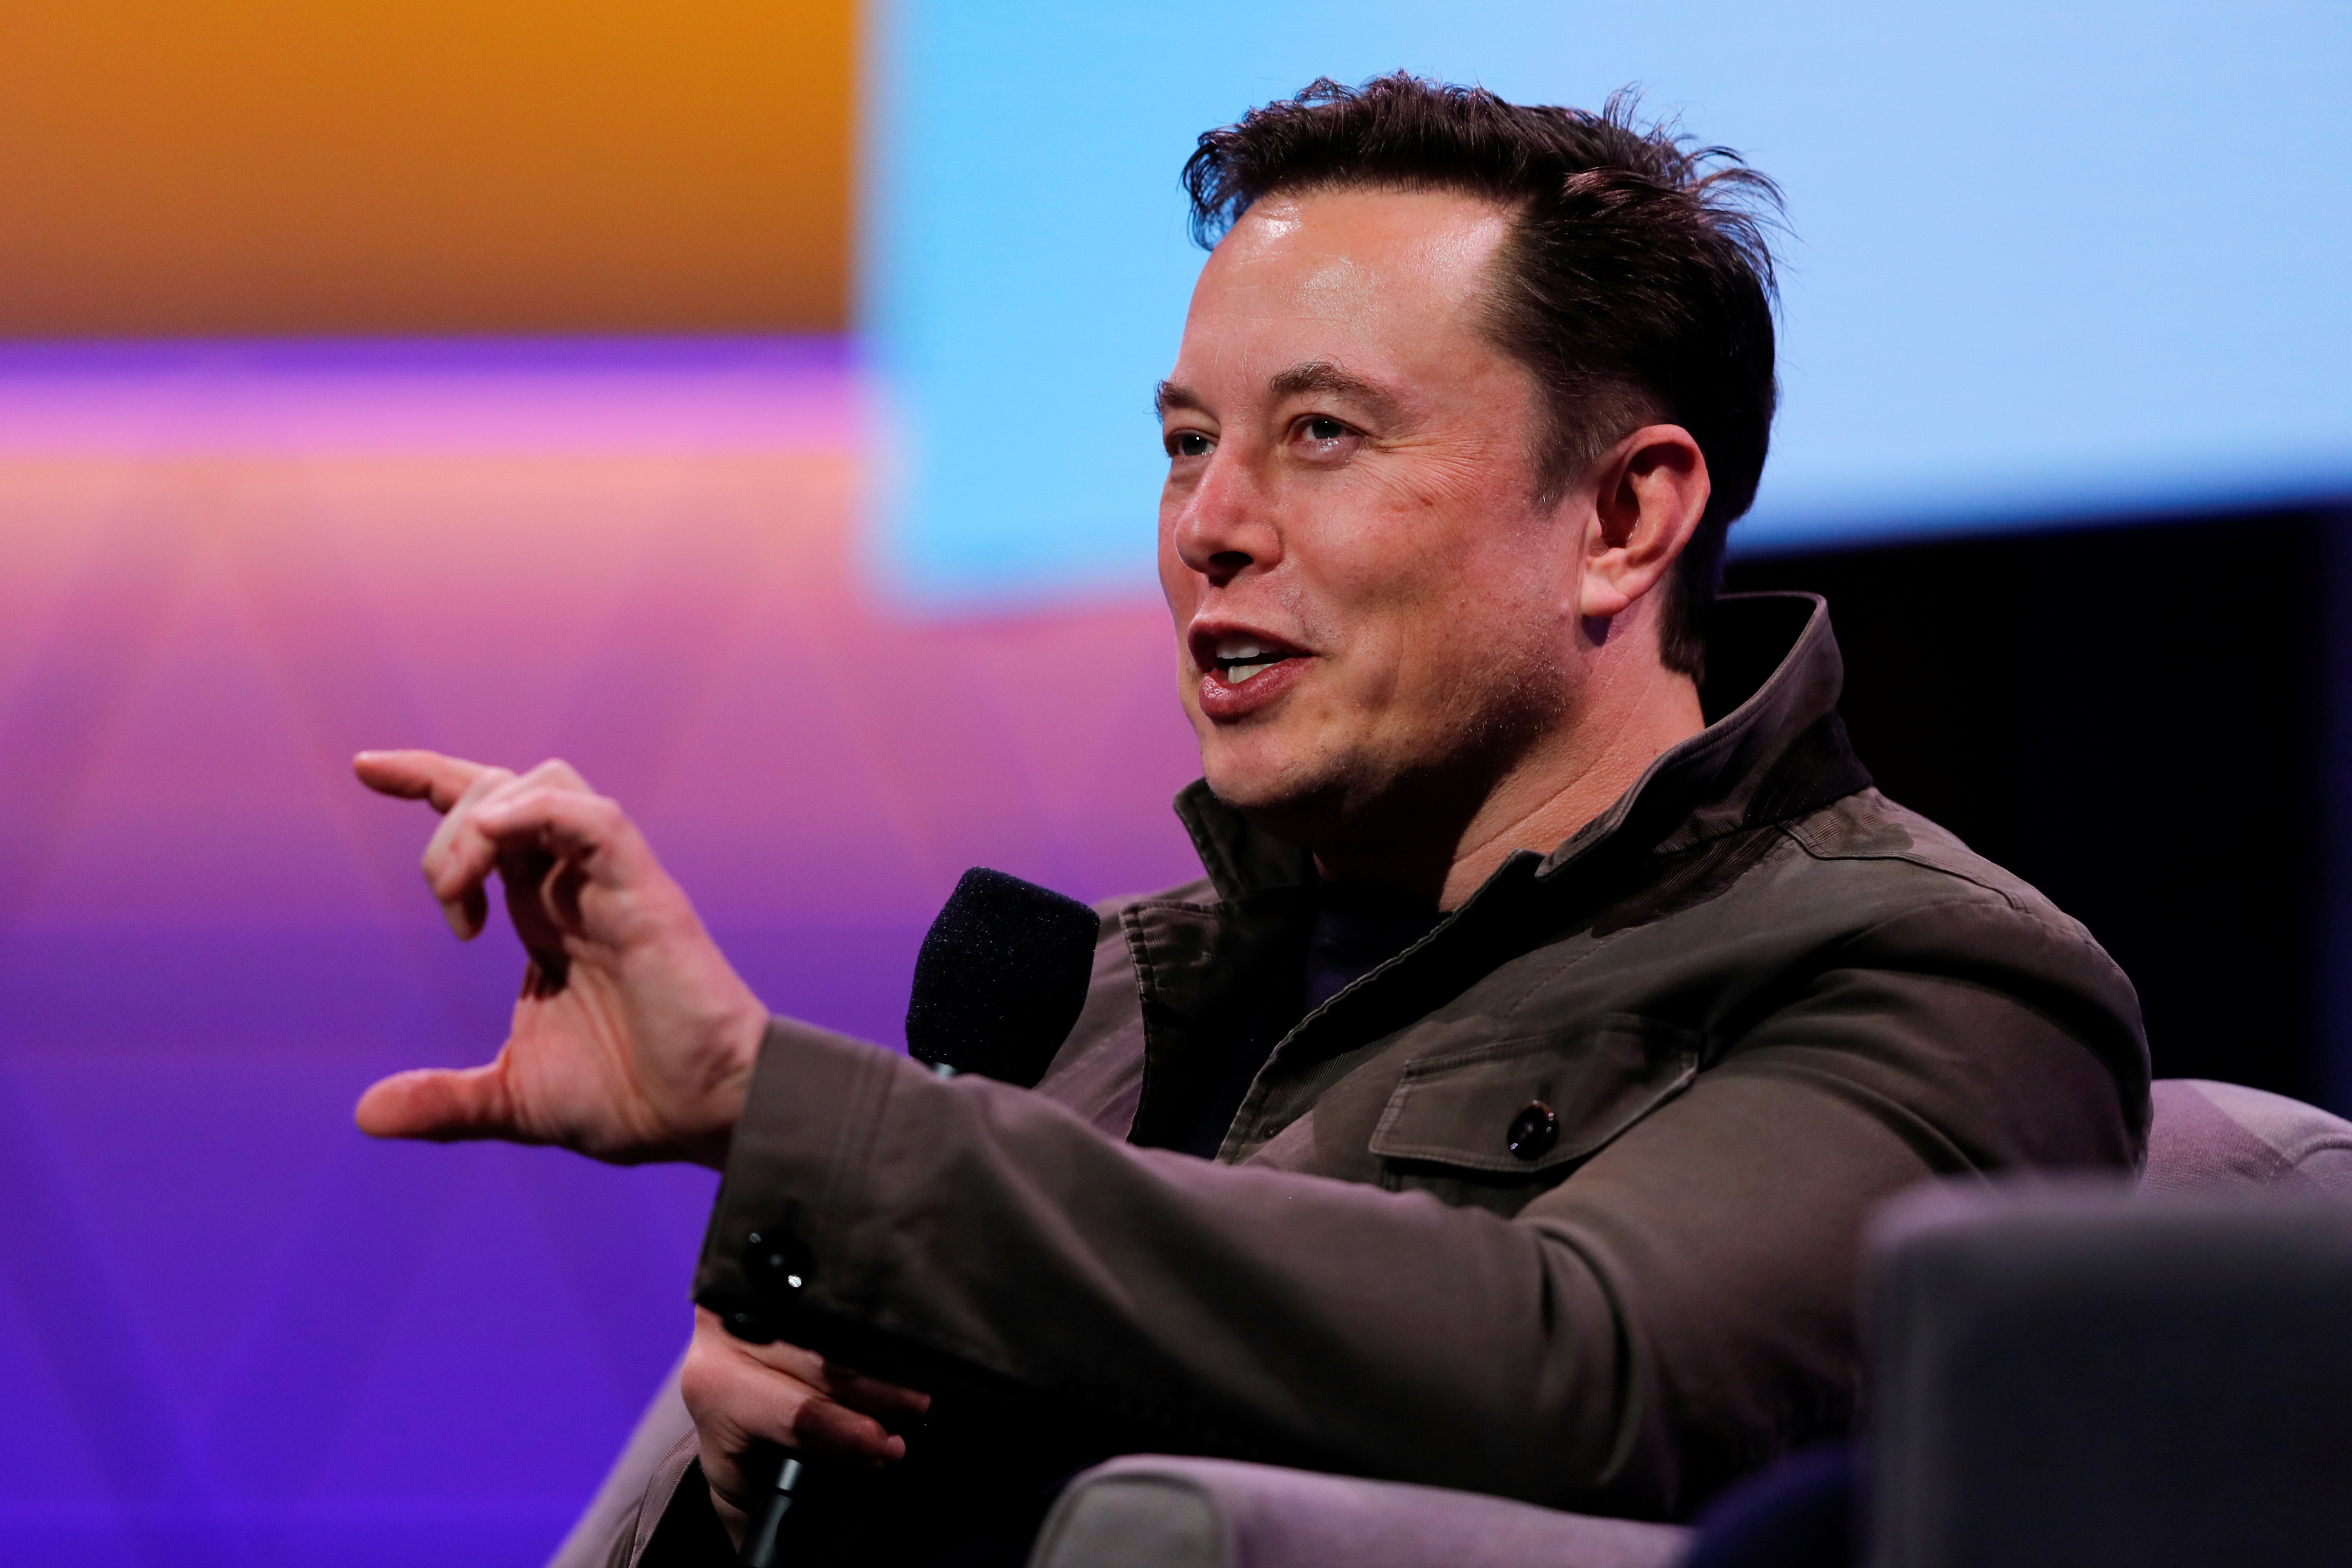 Elon Musk says 'pedo guy' tweet did not suggest British cave diver was a pedophile